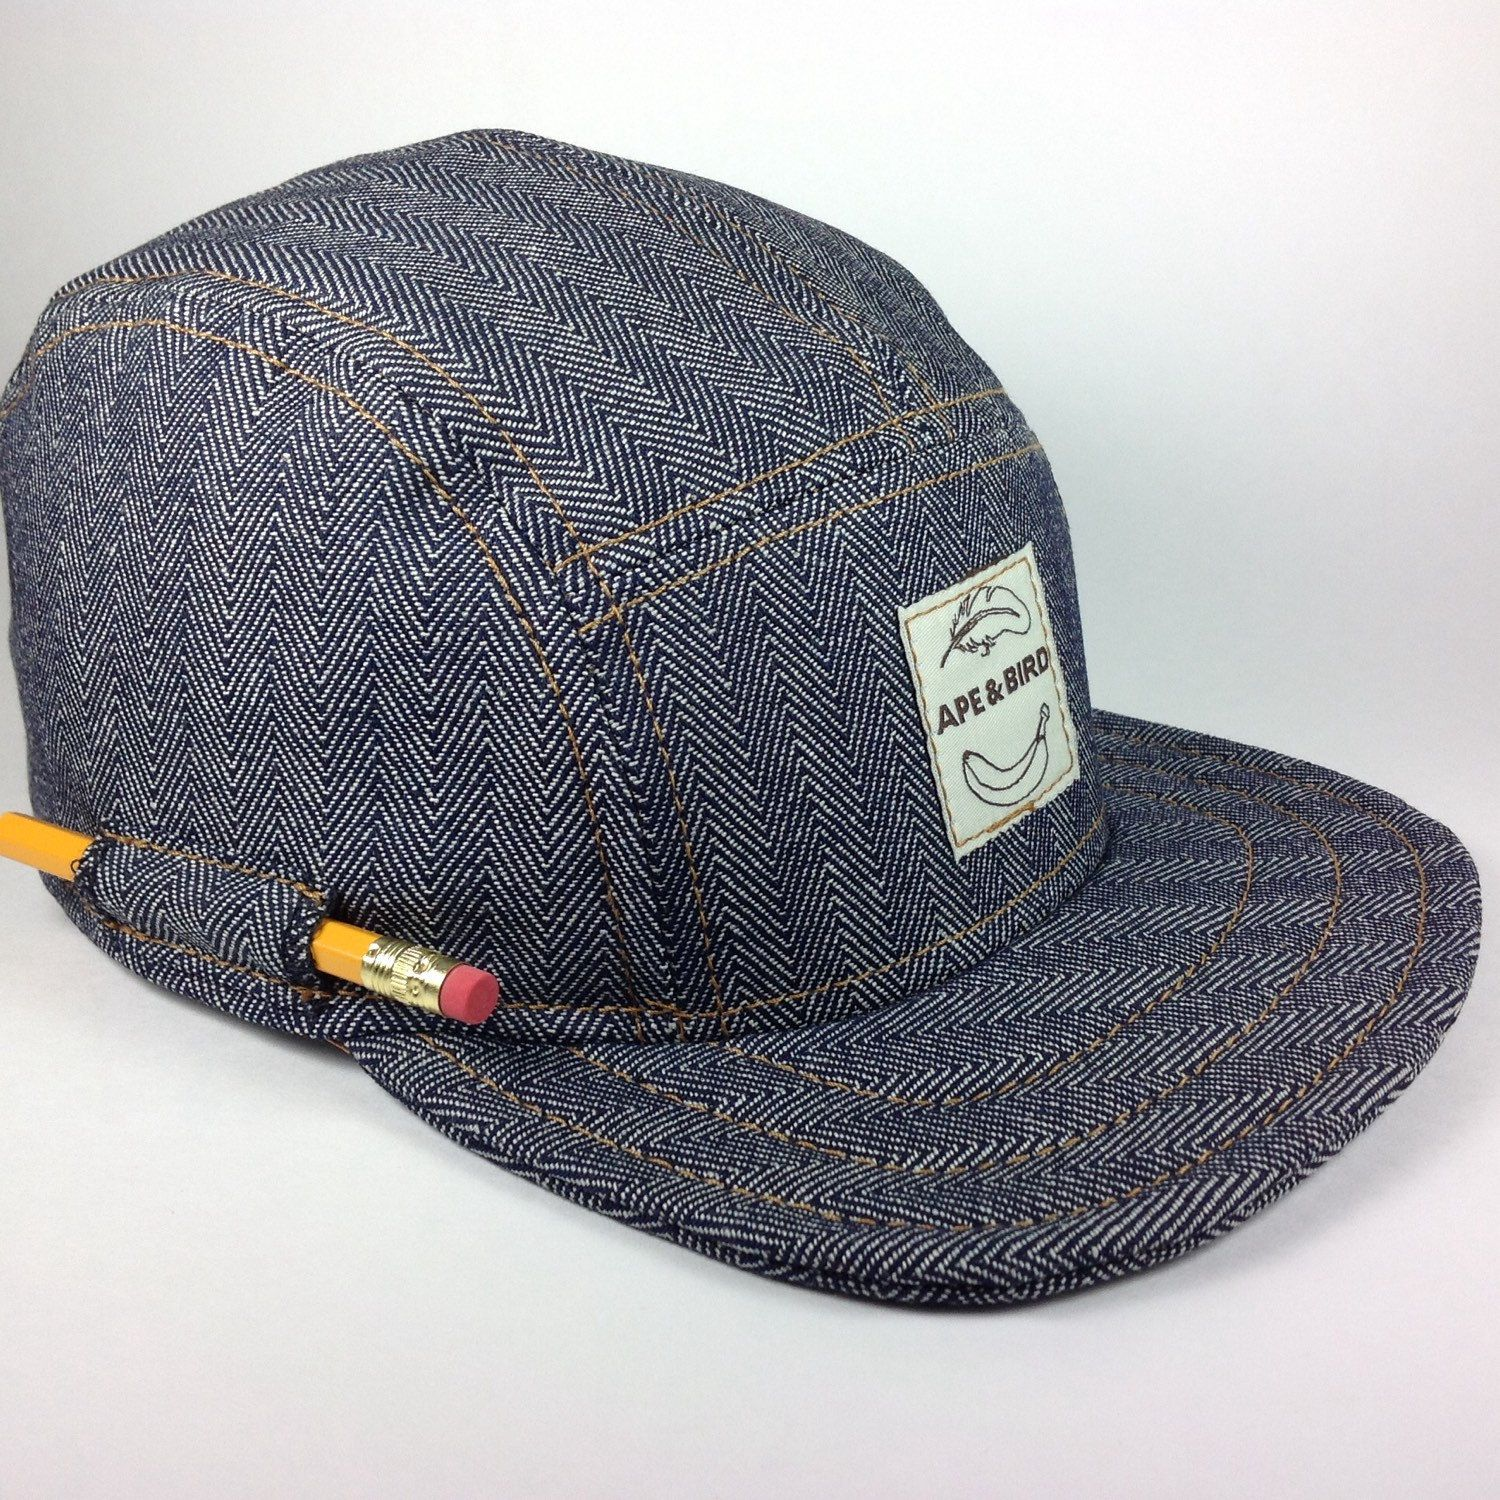 Handmade 5 panel cap. Indigo Herringbone Denim hat with PENCIL Pocket!  (45.00 USD) by ApeNBird da61a3172c1